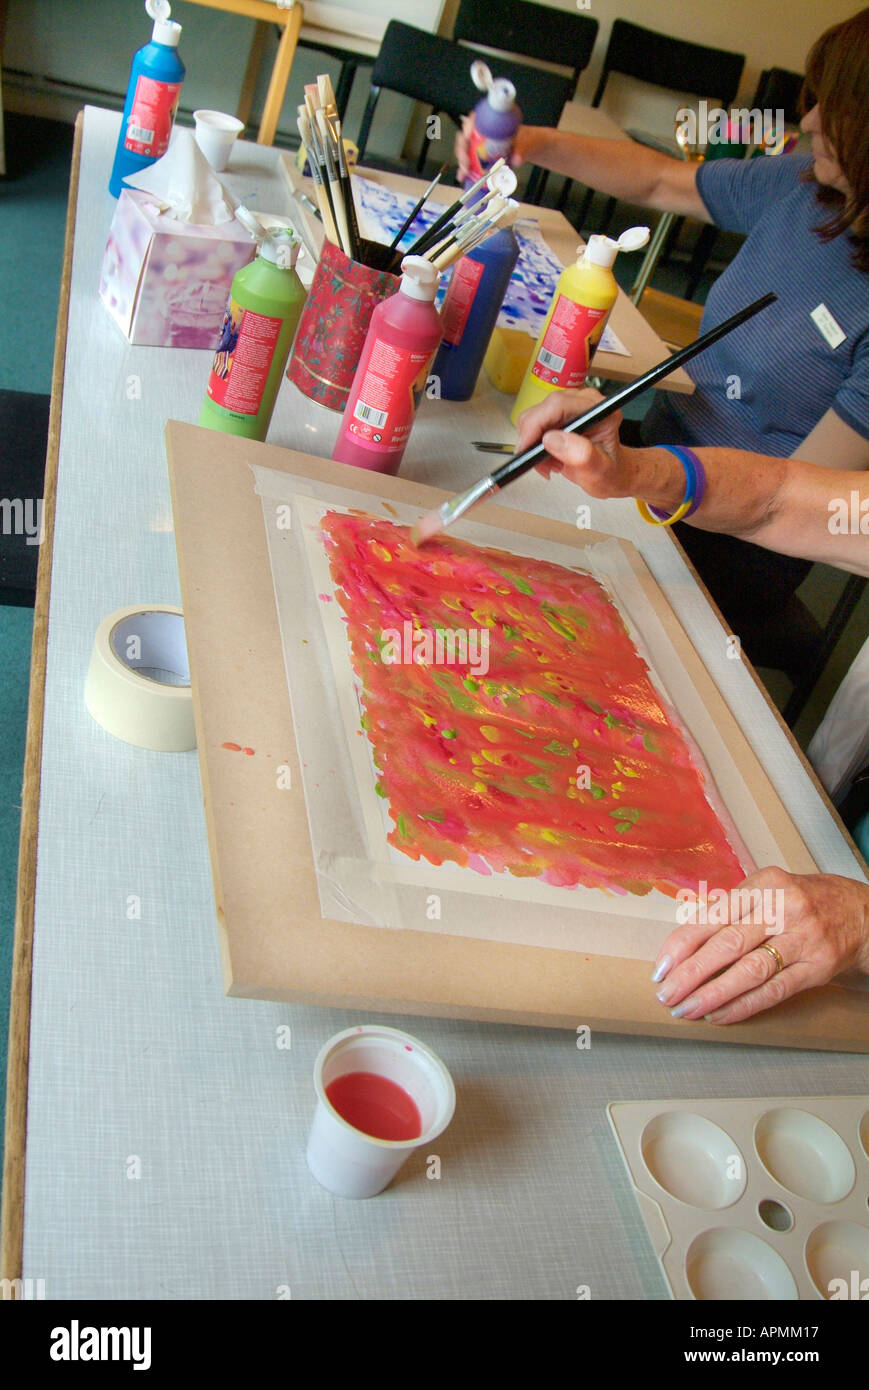 Painting Therapy Workshop Water Colour Color Table Top Drawing Board Stock Photo Alamy